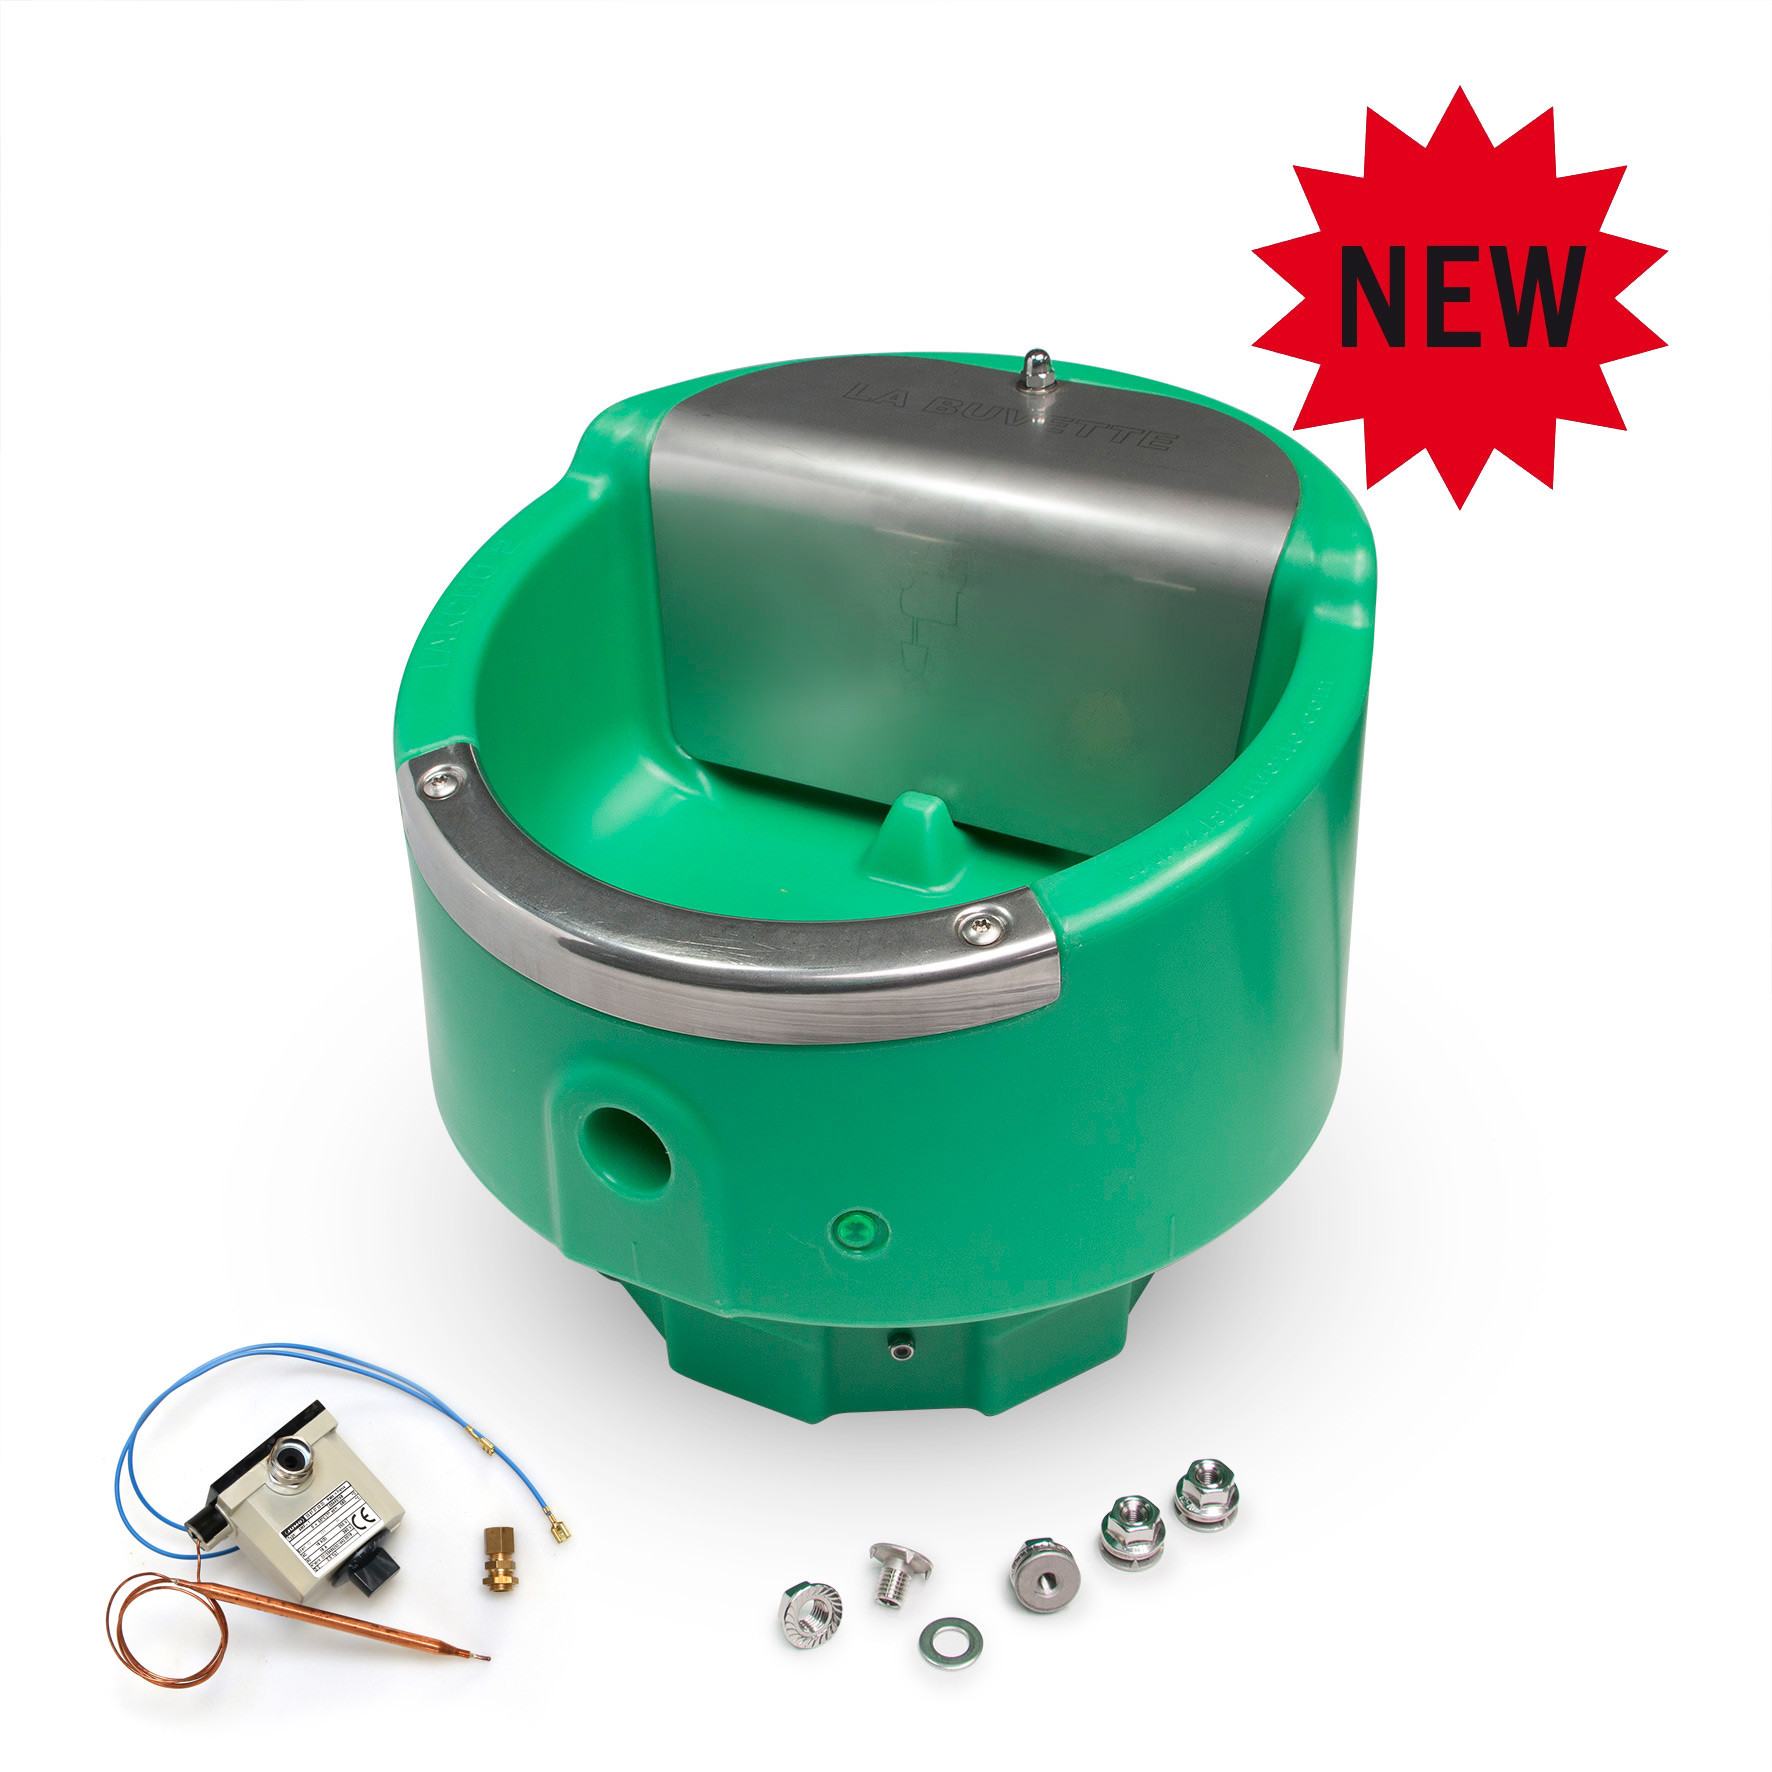 Frost-free drinking bowl with constant water level LAKCHO2